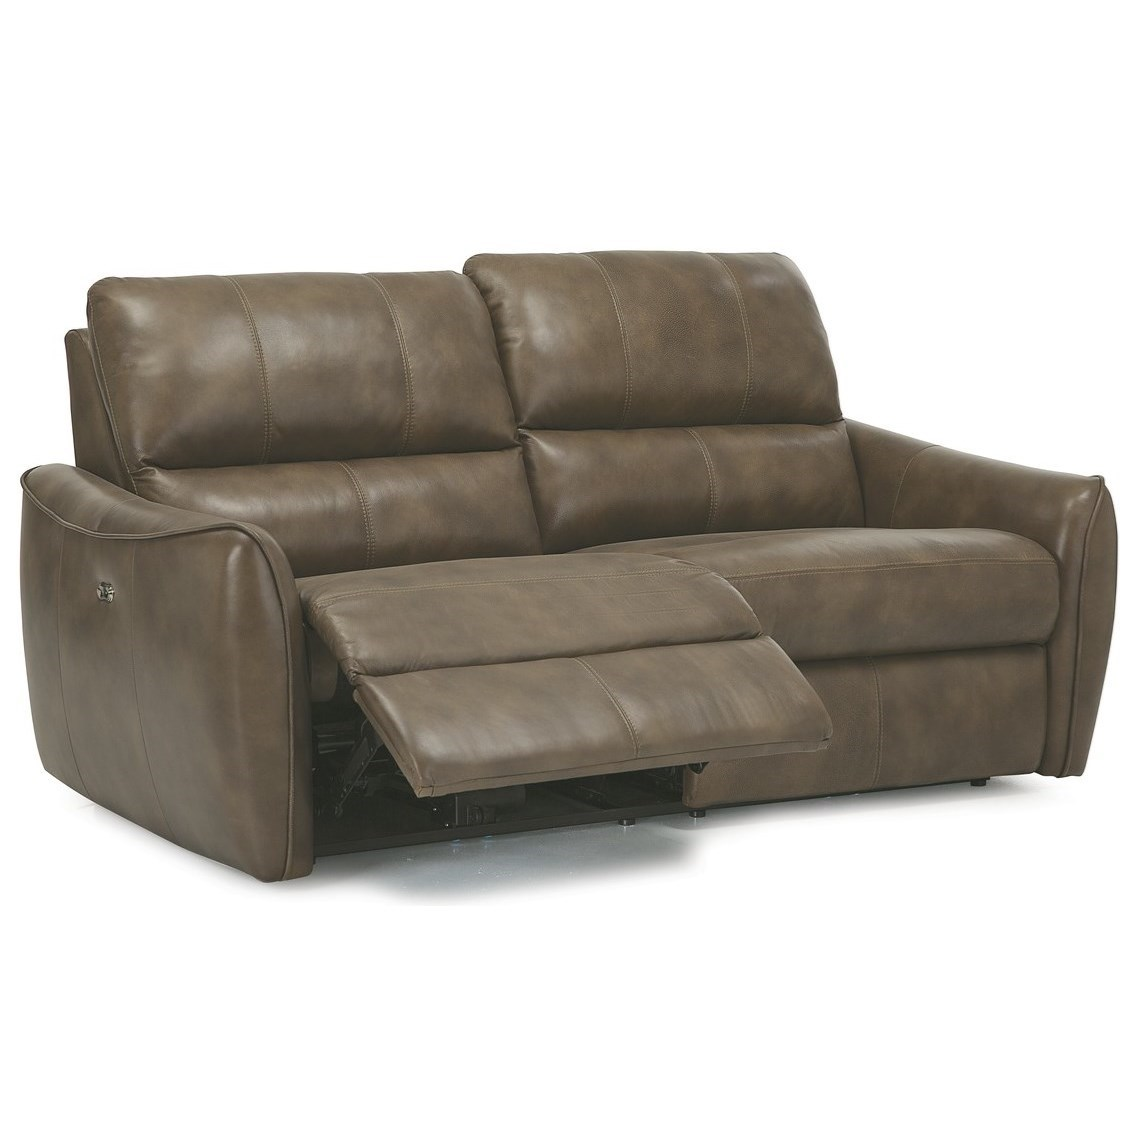 pause modern reclining sectional sofa by palliser reupholster dubai arlo contemporary recliner with tapered arms